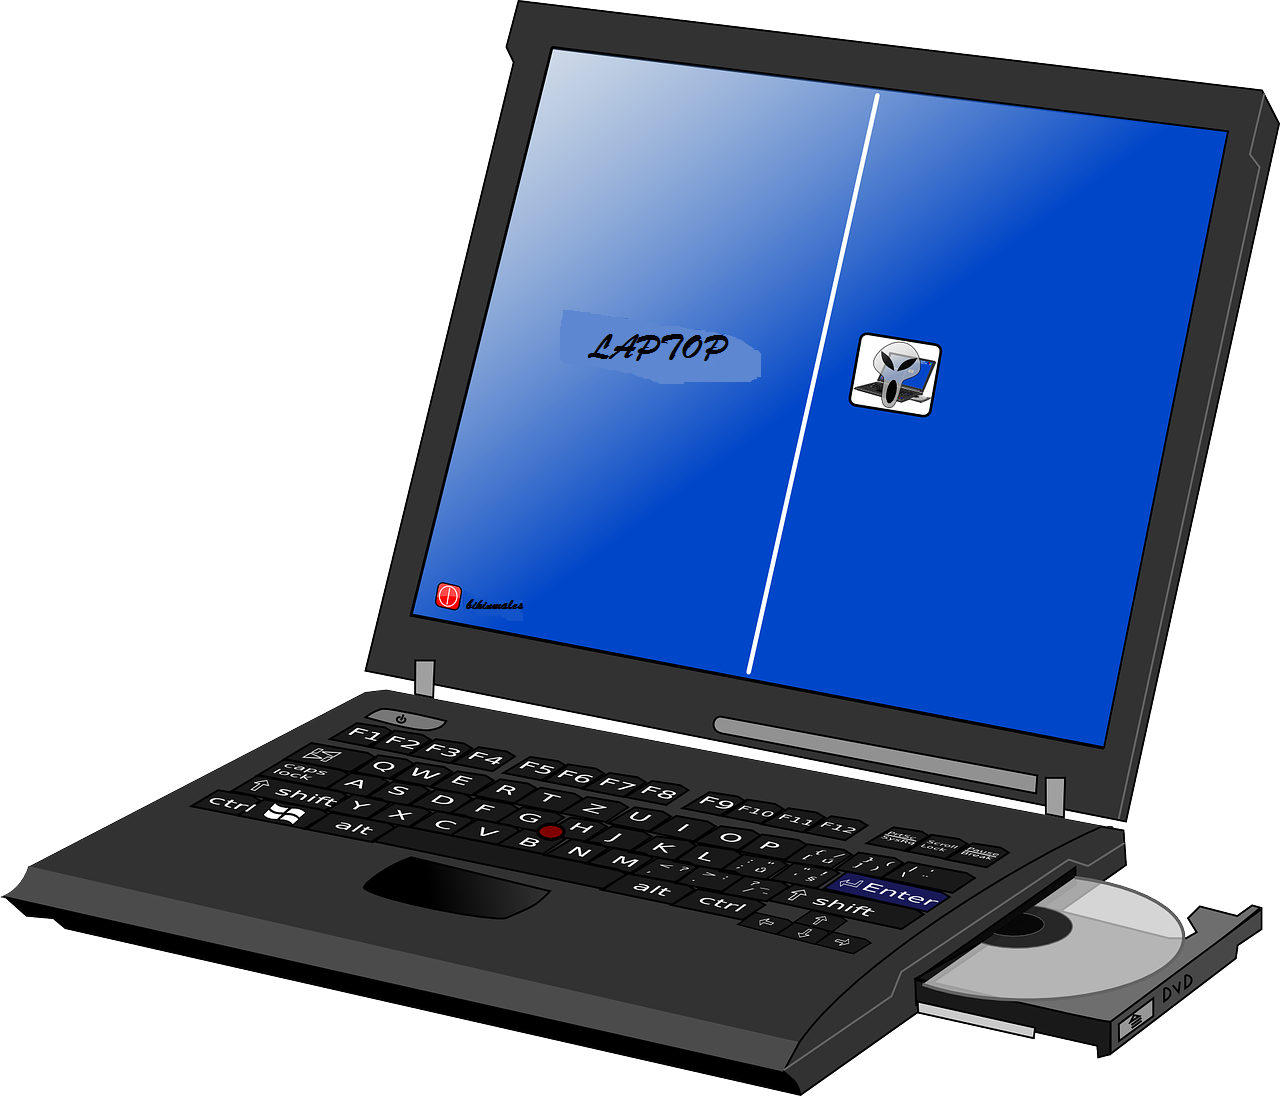 Ilustrasi Optical Drive pada laptop